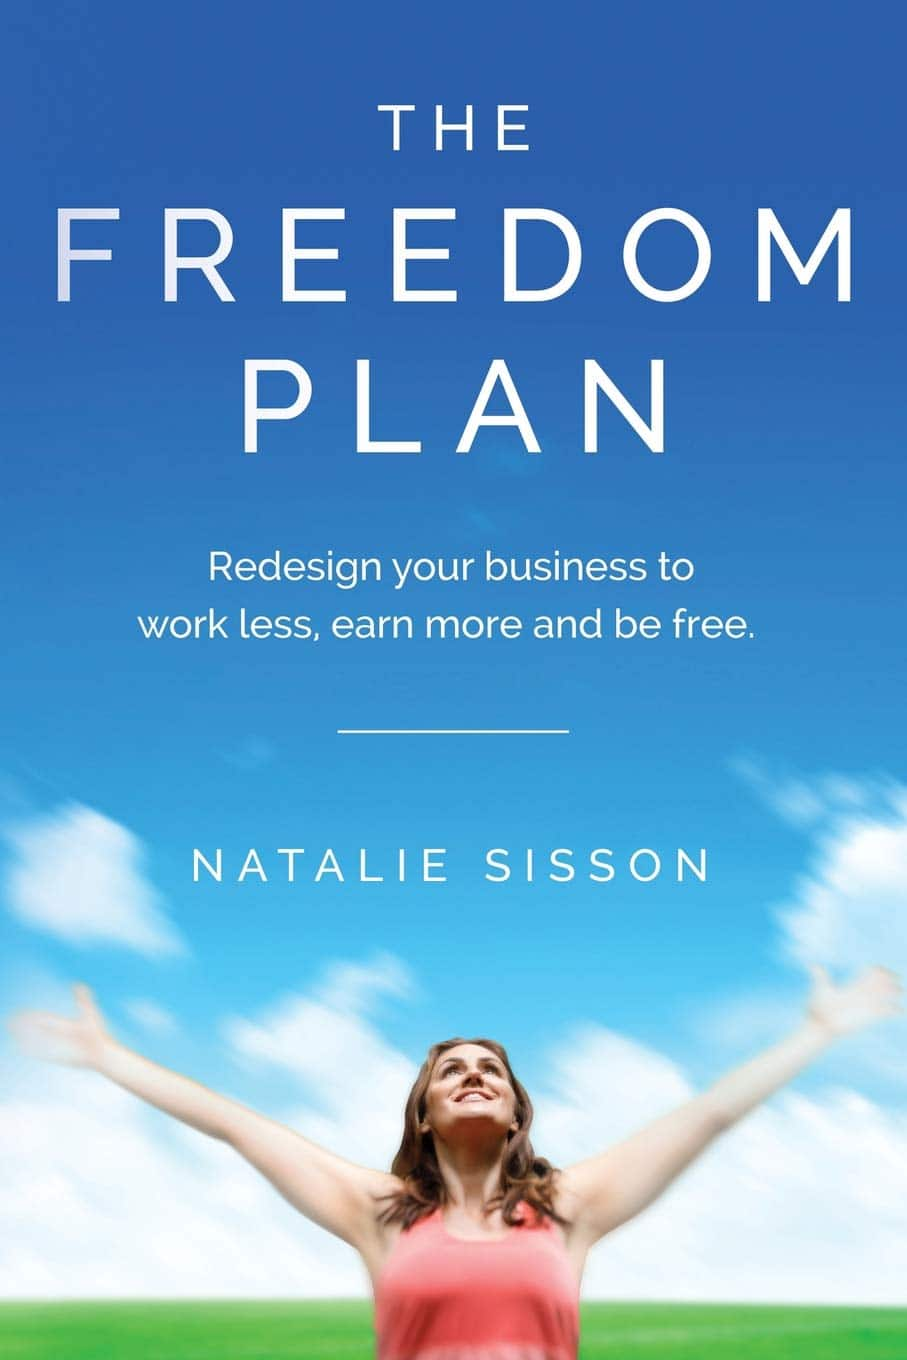 The Freedom Plan book cover